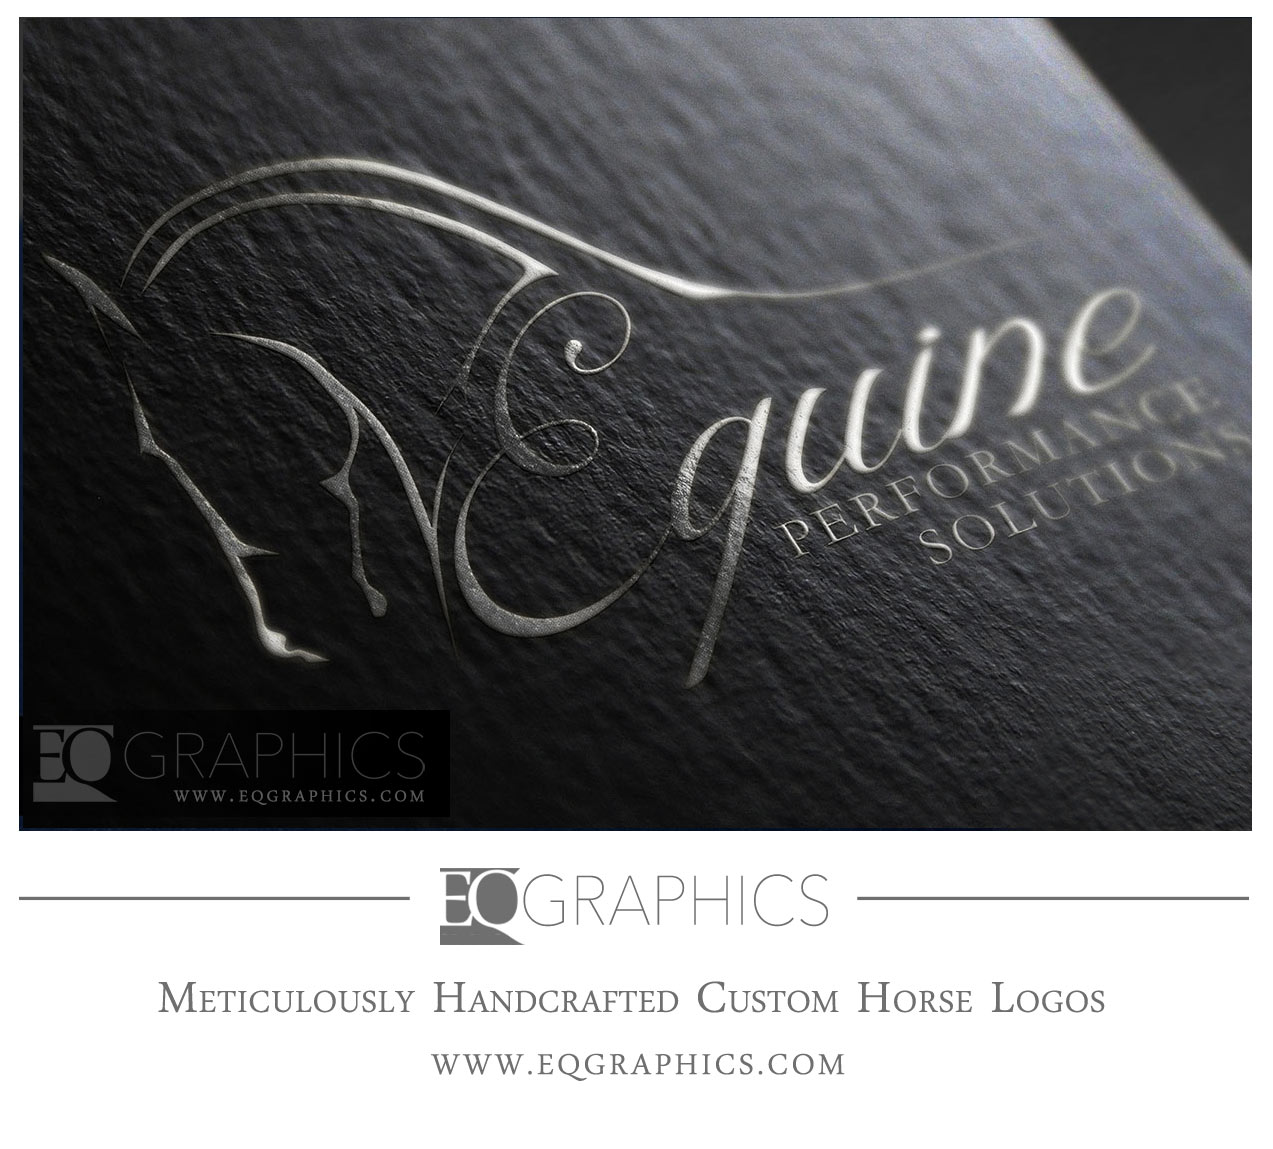 Equine Performance Solutions Logo Design by Horse Logos Designer EQ Graphics